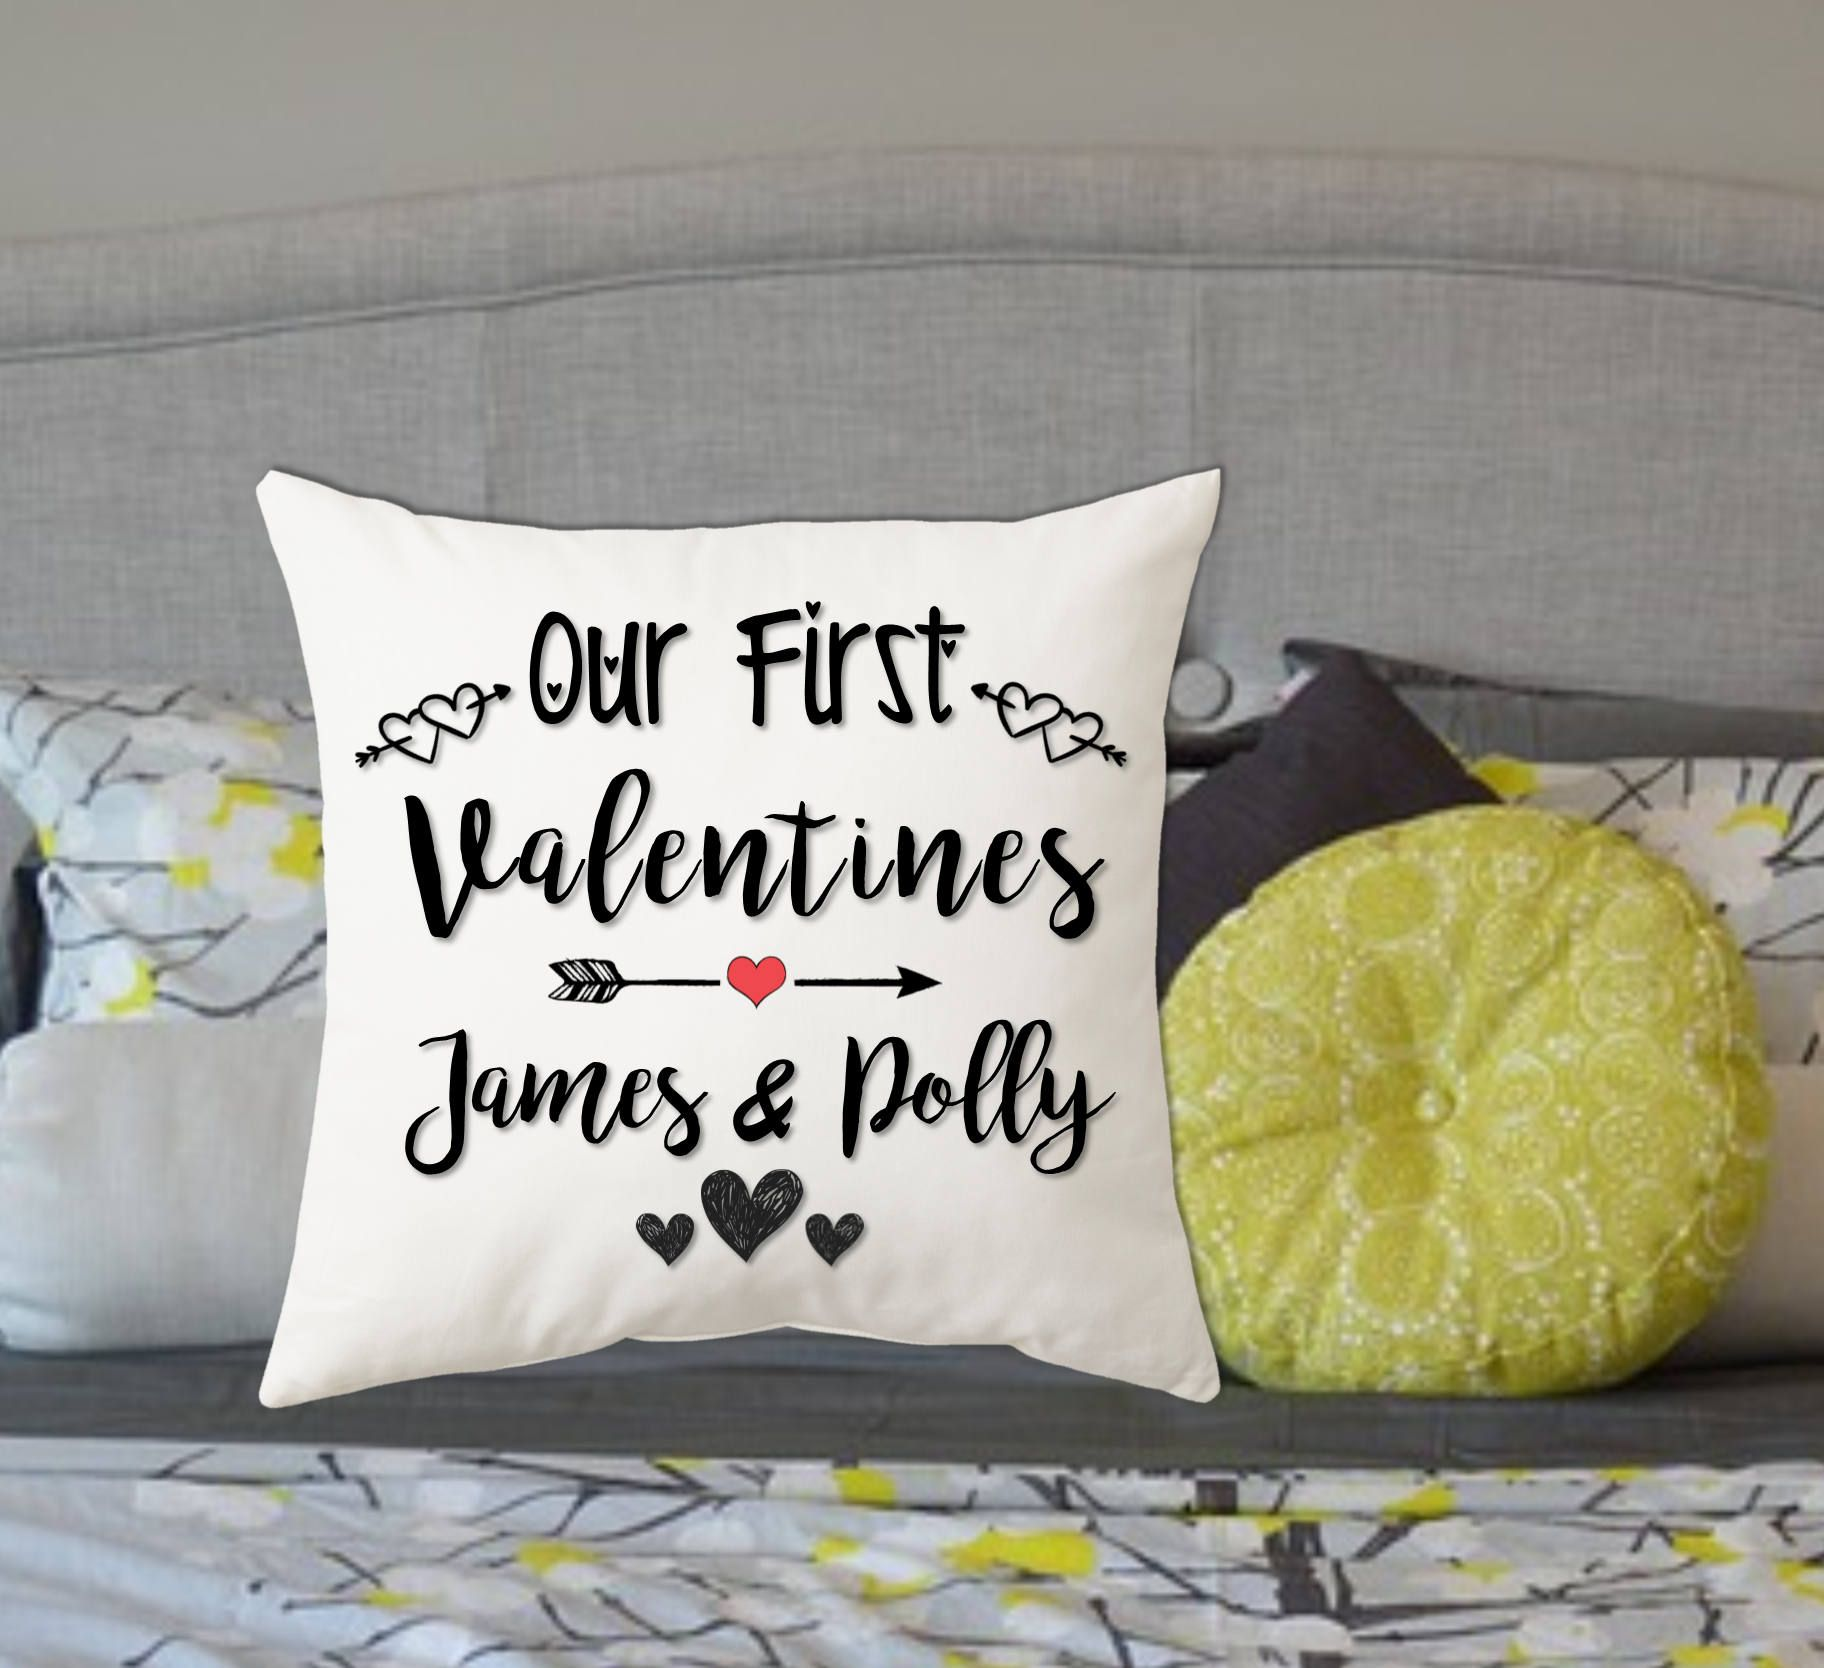 Personalised valentines cushion pillow gift perfect present husband